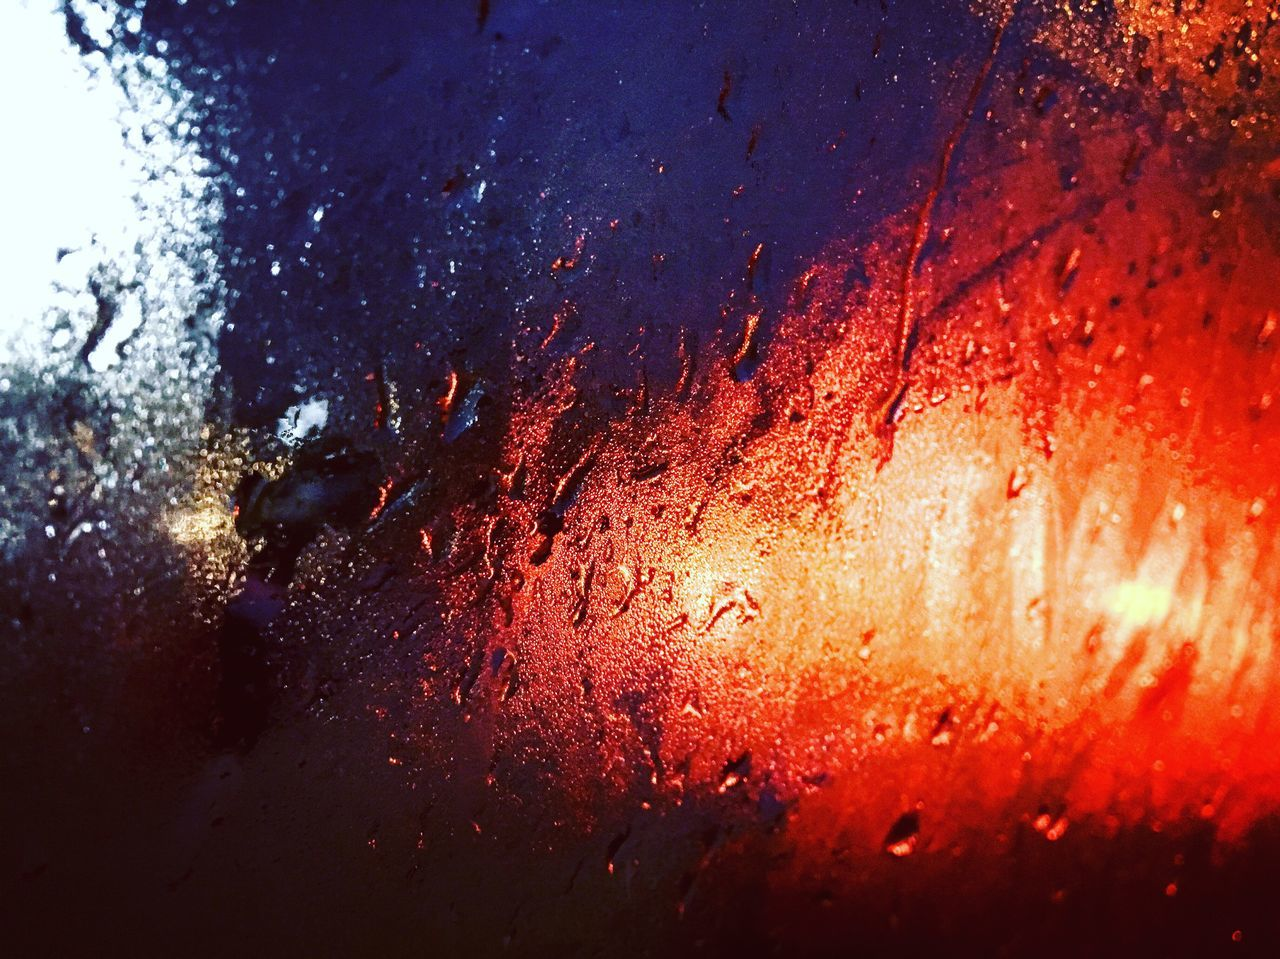 When the streets lights is crows of the window of car and make a difference view like painting. I like the reflection of lights specially powerful colors like blue and red Red Red Color Red Light Colors Rot Blau Und Rot